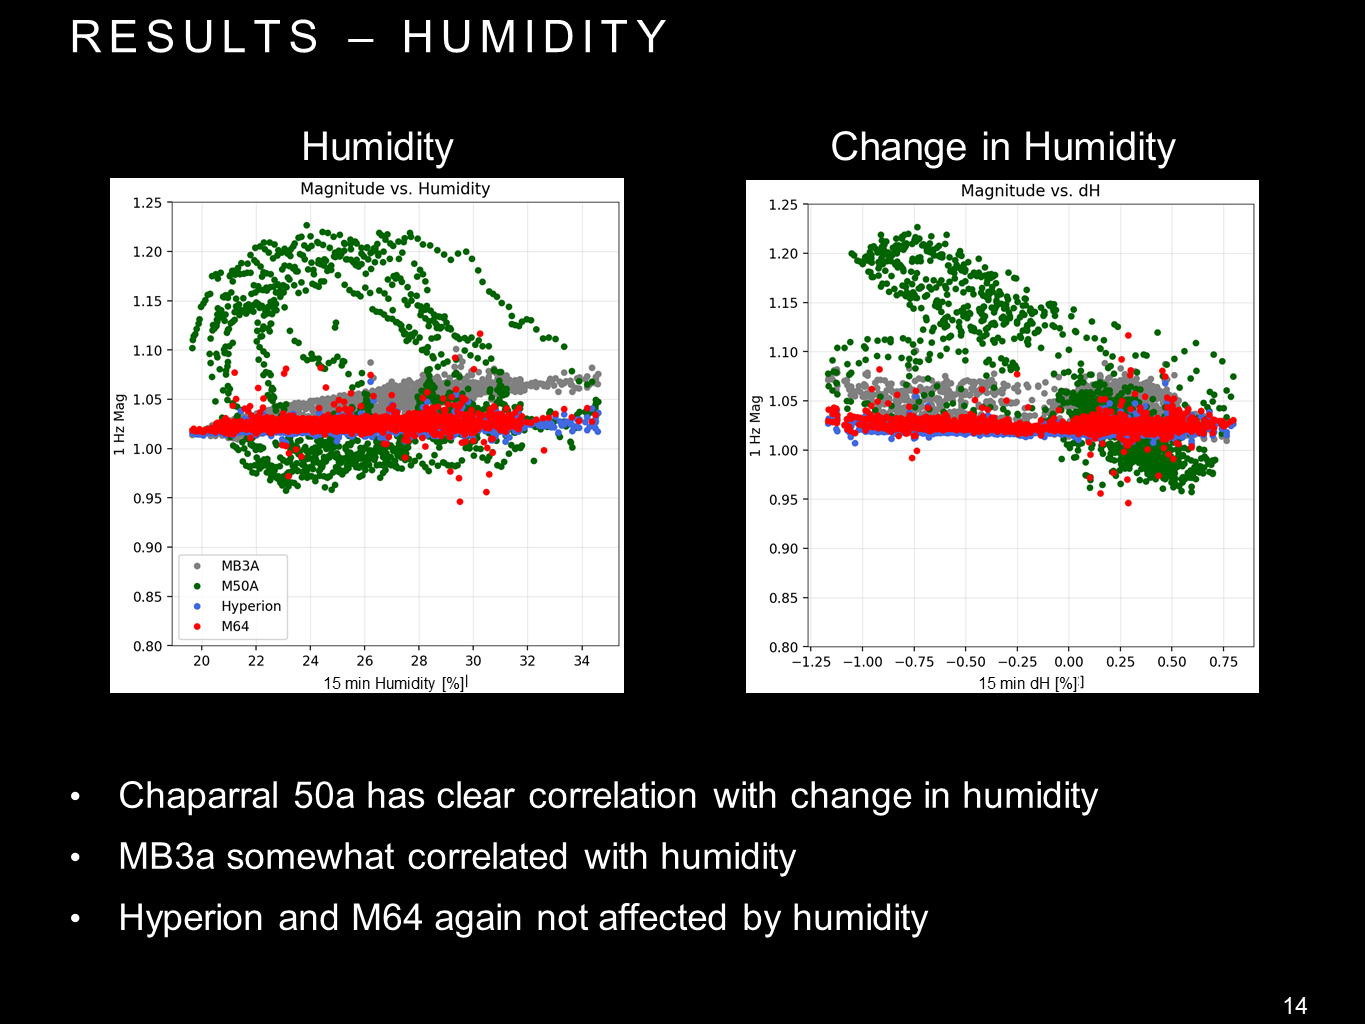 Sensor responses (at 1 Hz) to humidity (left) and changes in humidity (right) during a 7 day period in February 2018.